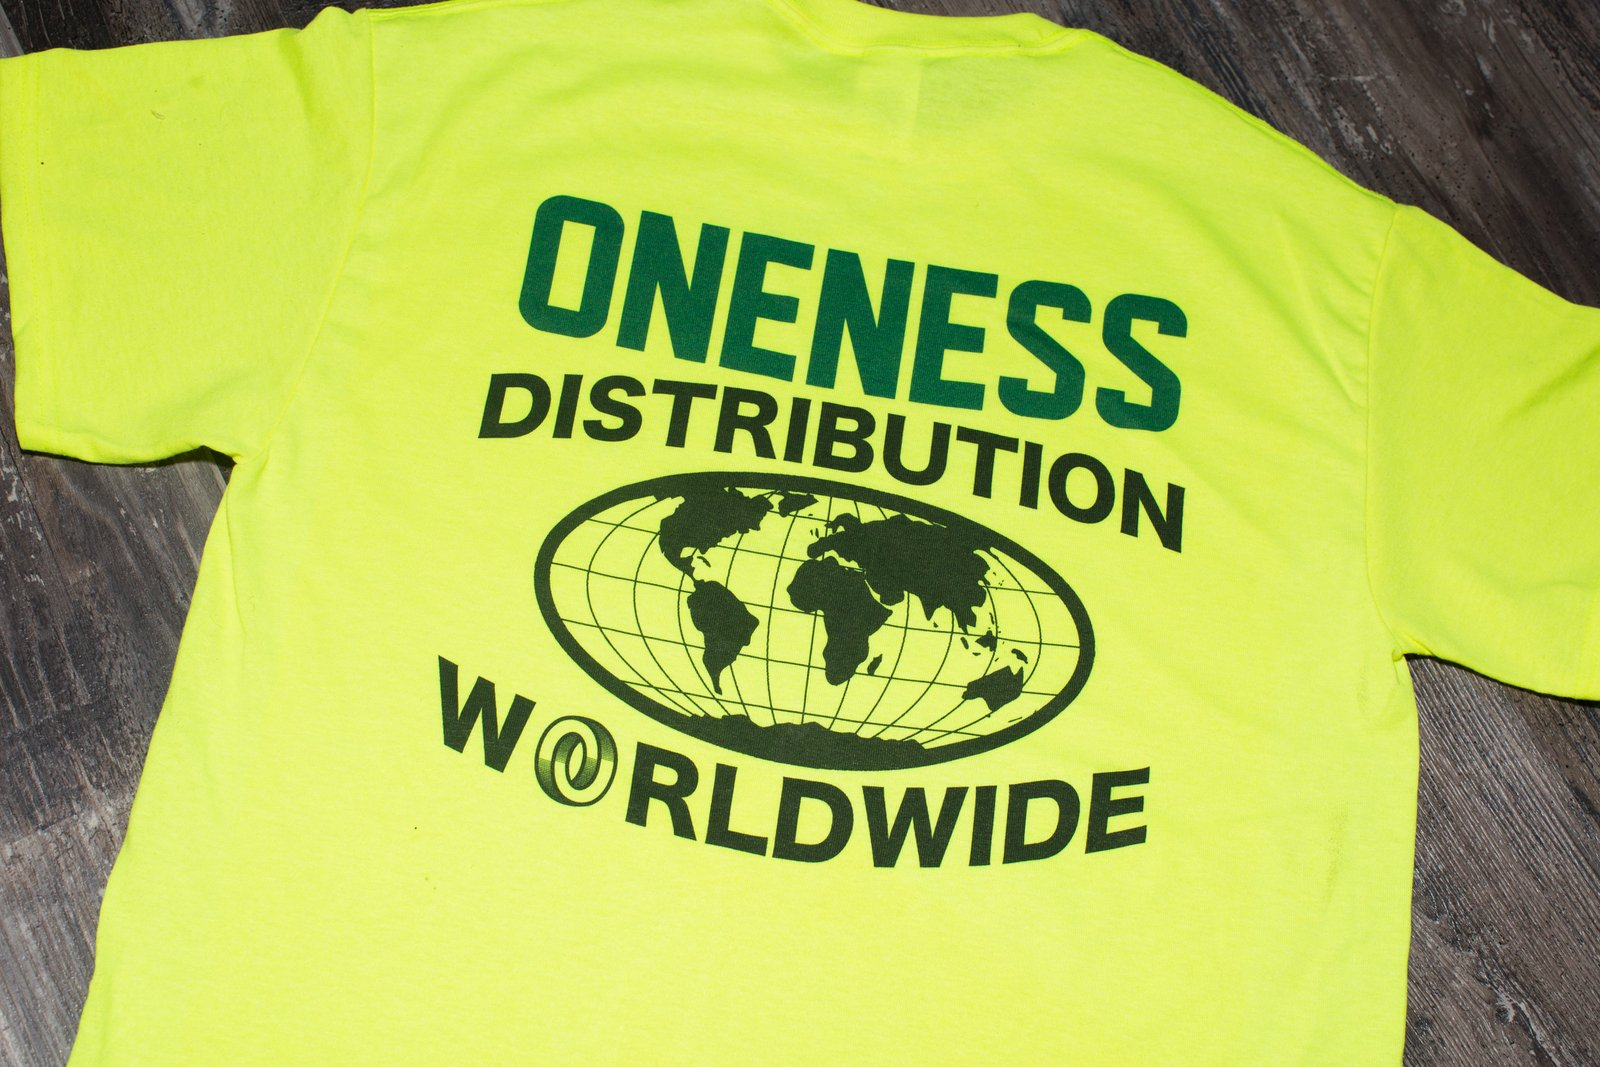 ONENESS WORLDWIDE DISTRIBUTION SHIRT